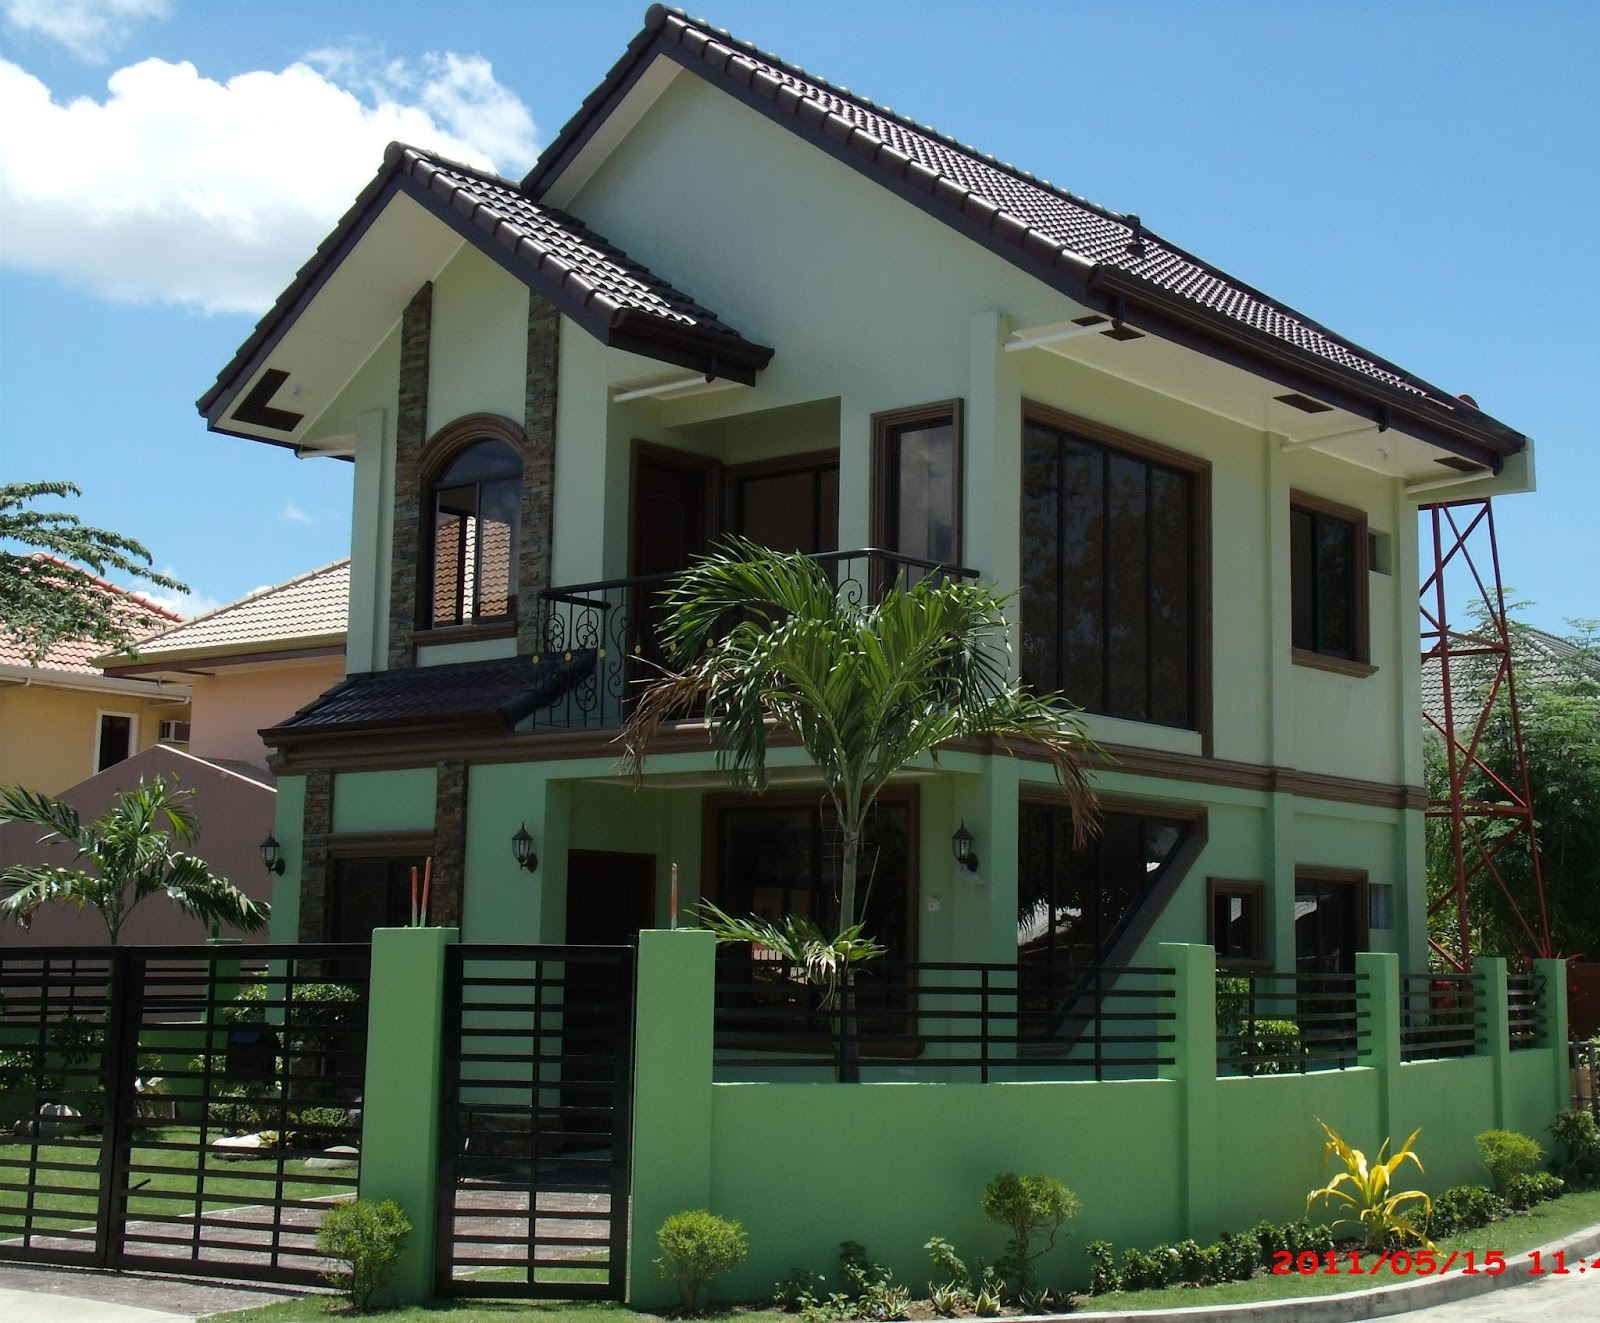 House Designs Websites Sulit Com Ph Hgtv Google Office Is Known As One Of The Best Most Enjoyable Job In The World You